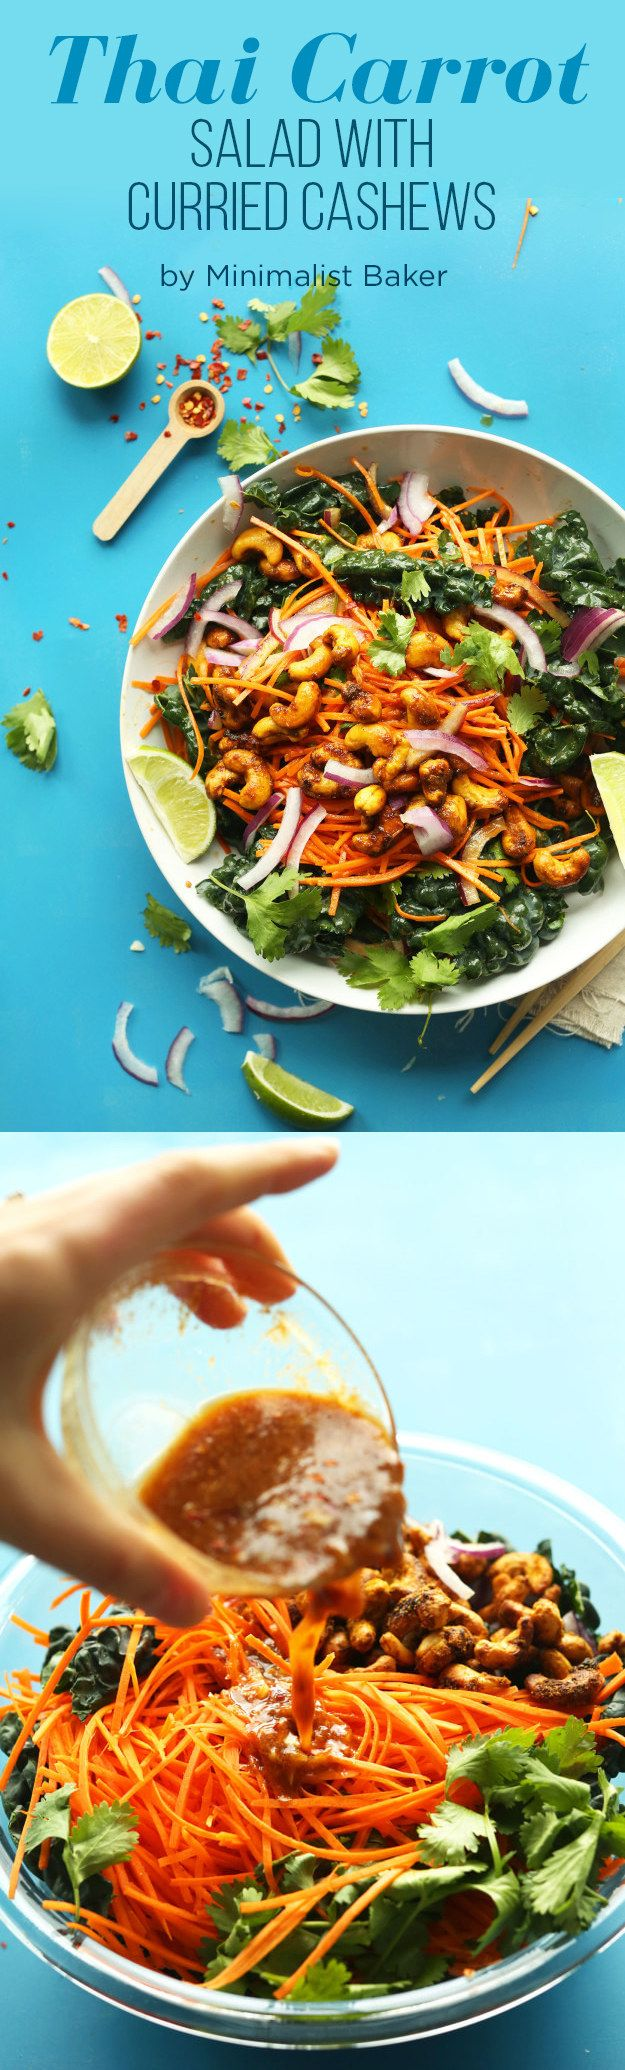 Thai Carrot Salad With Curried Cashews